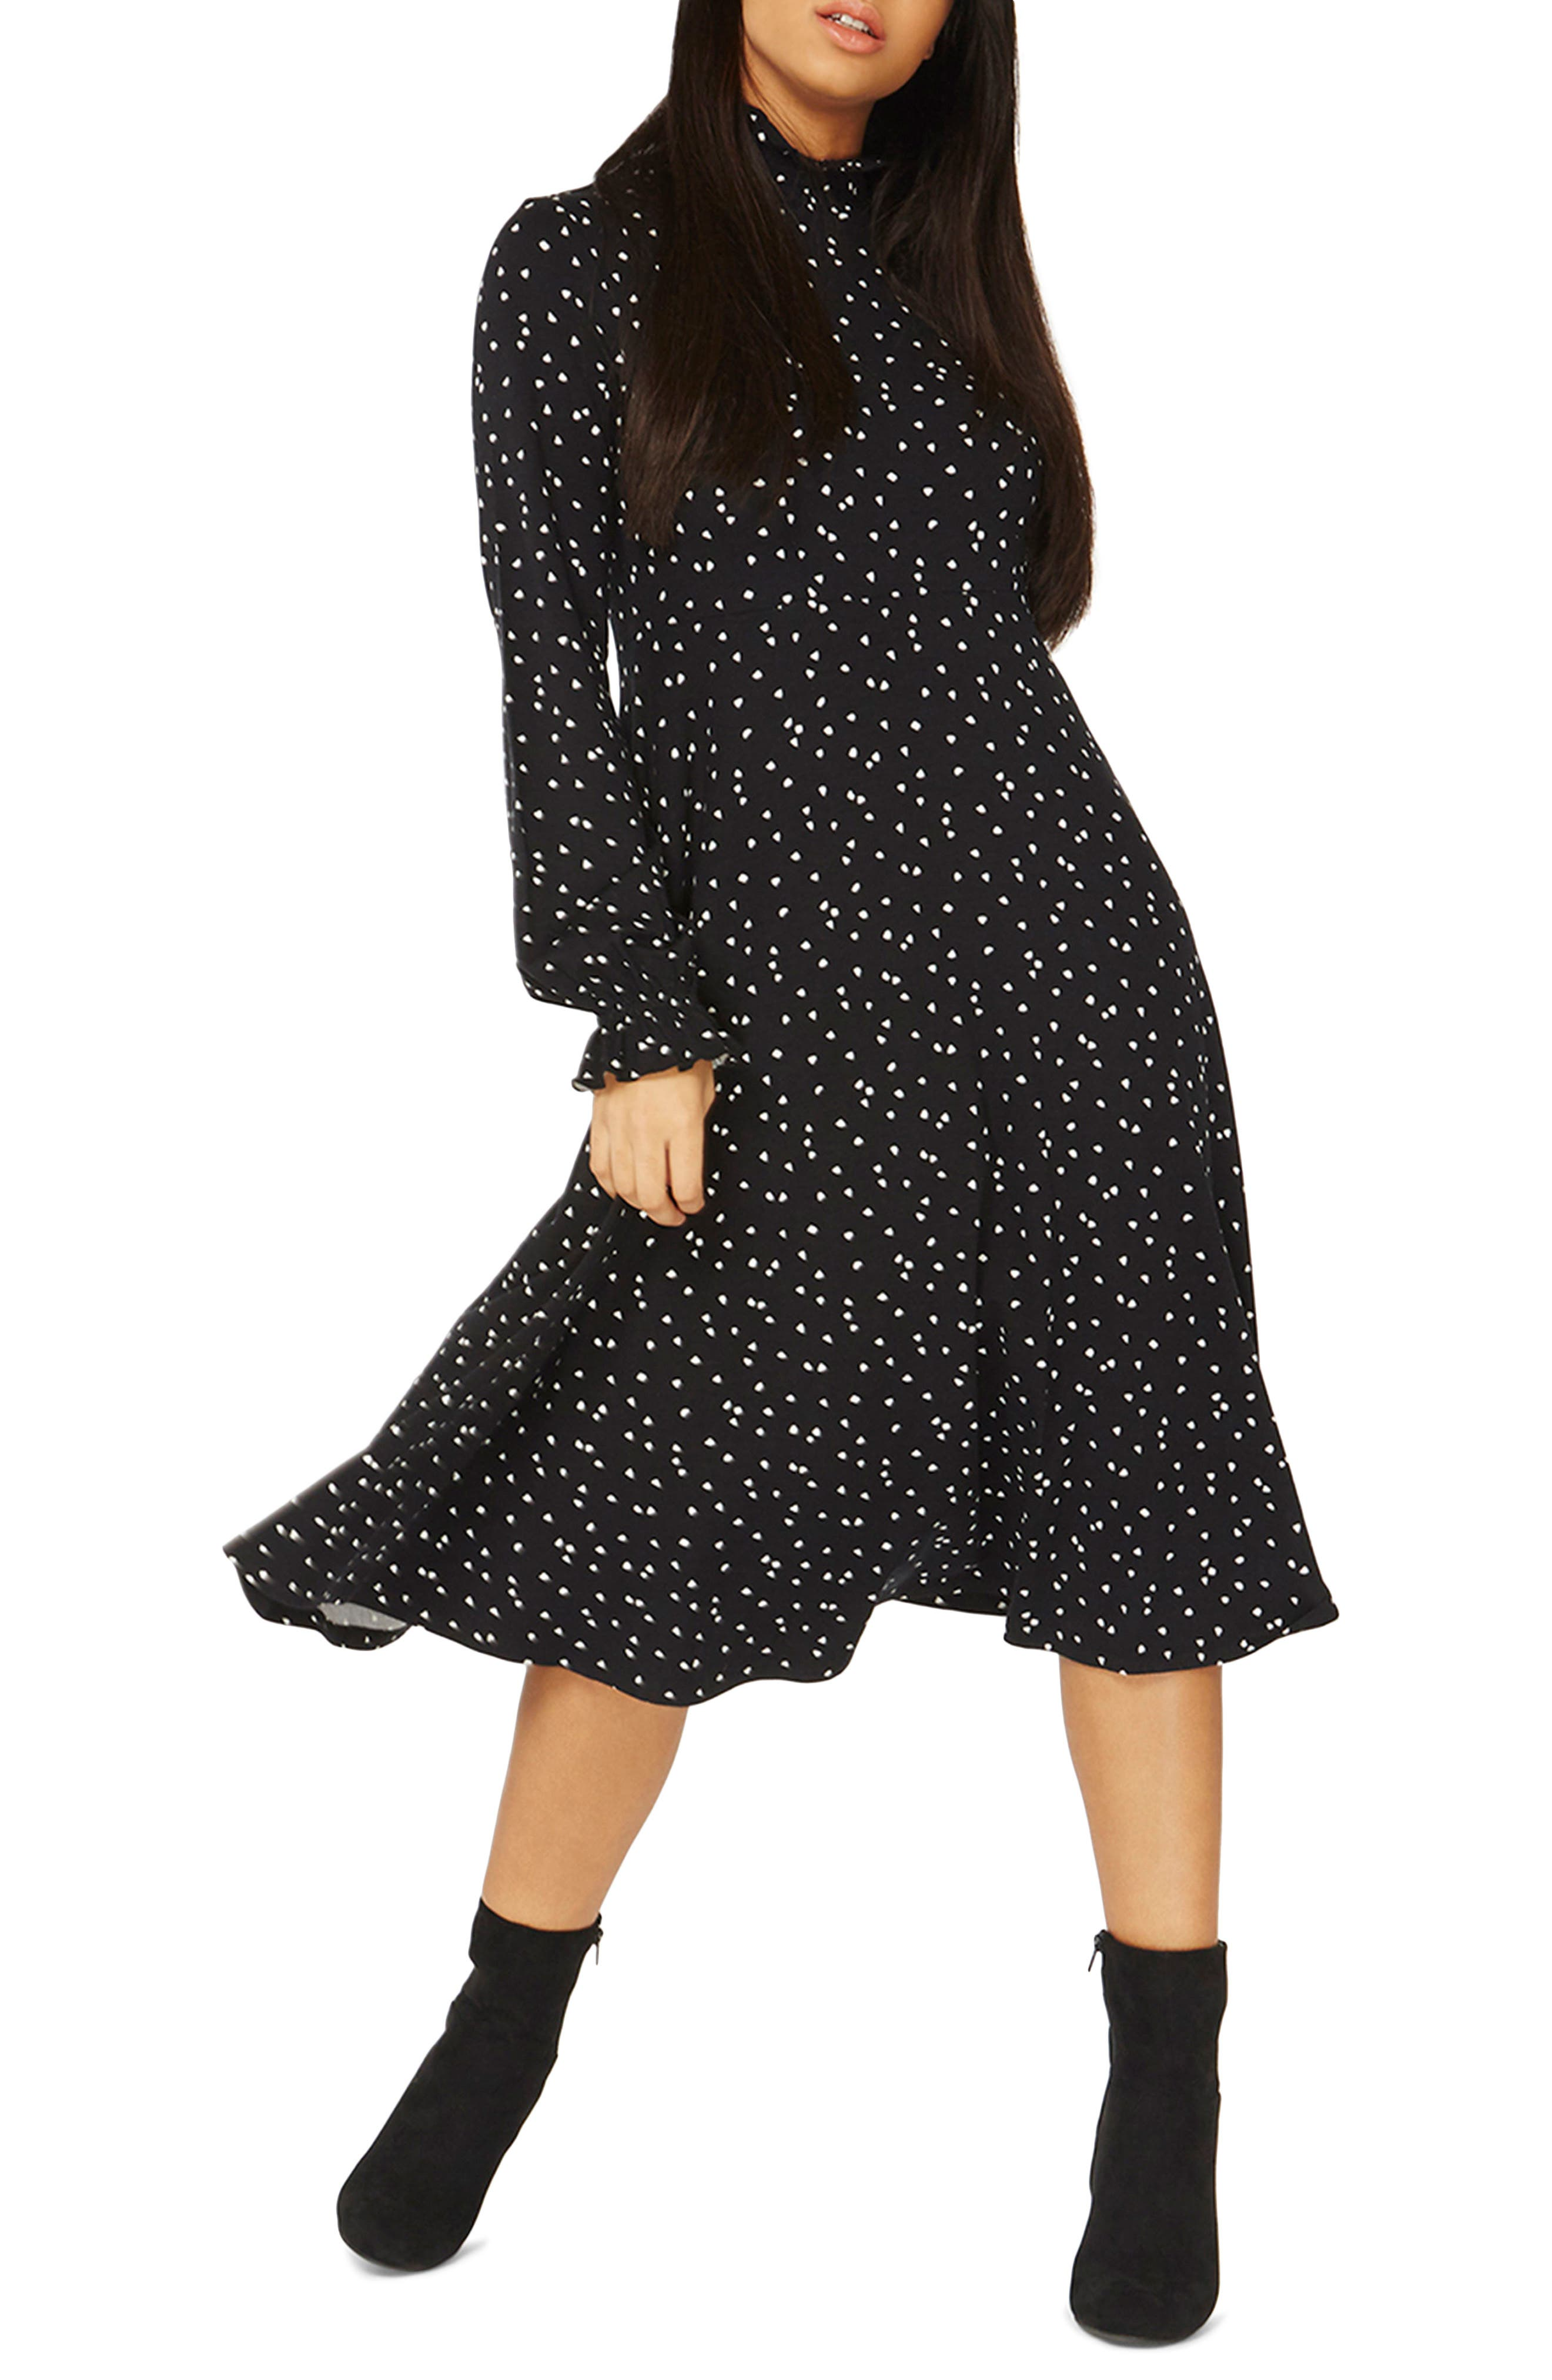 Heart Midi Dress,                             Main thumbnail 1, color,                             Black